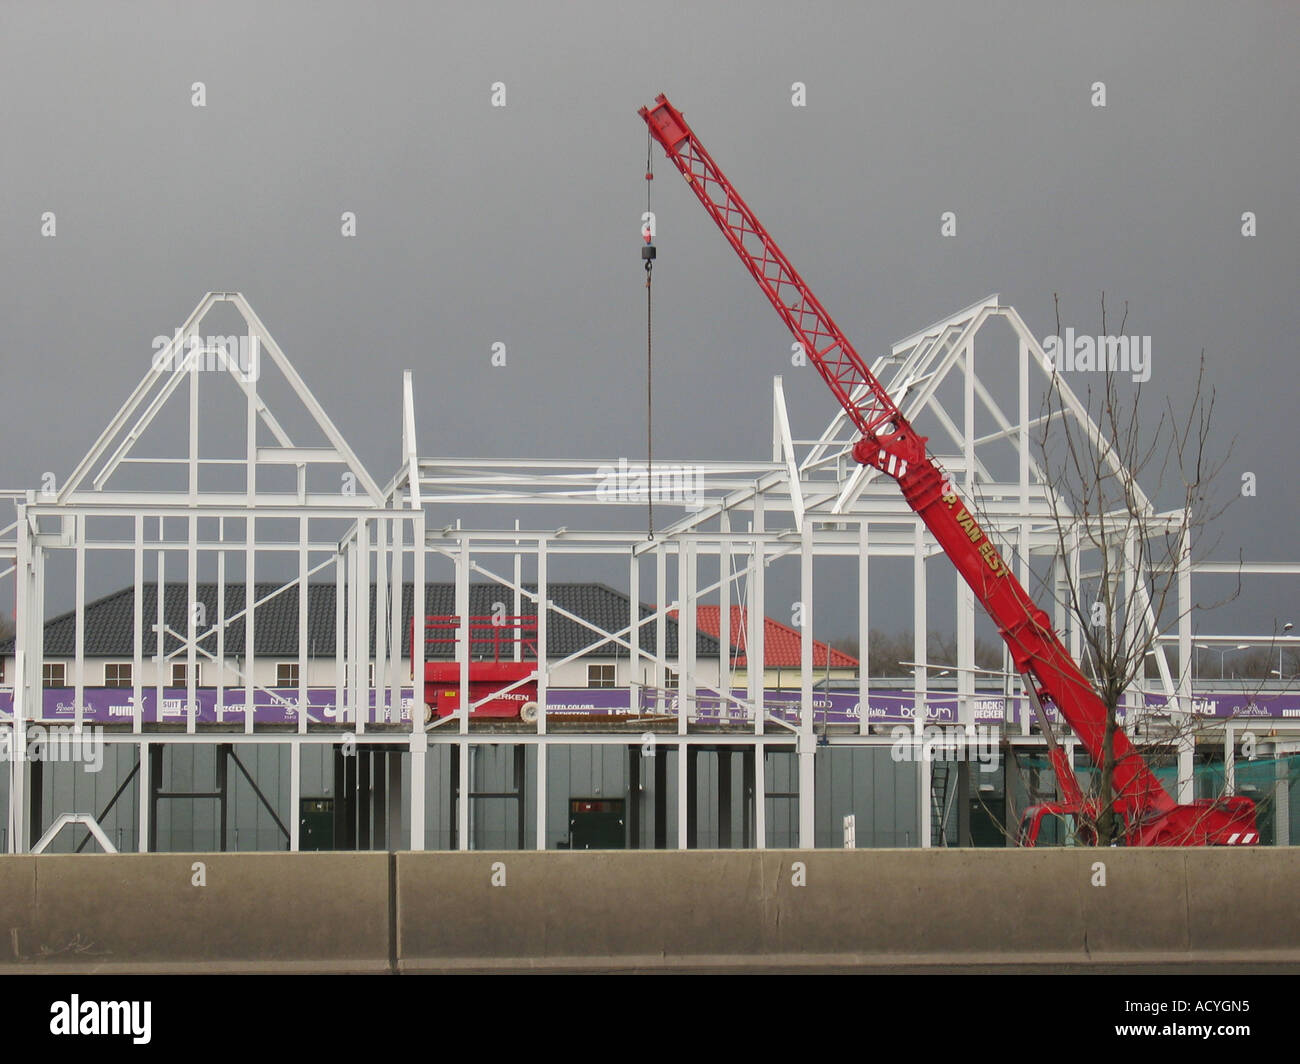 detail of house being built with crane and metal construction at building site Stock Photo